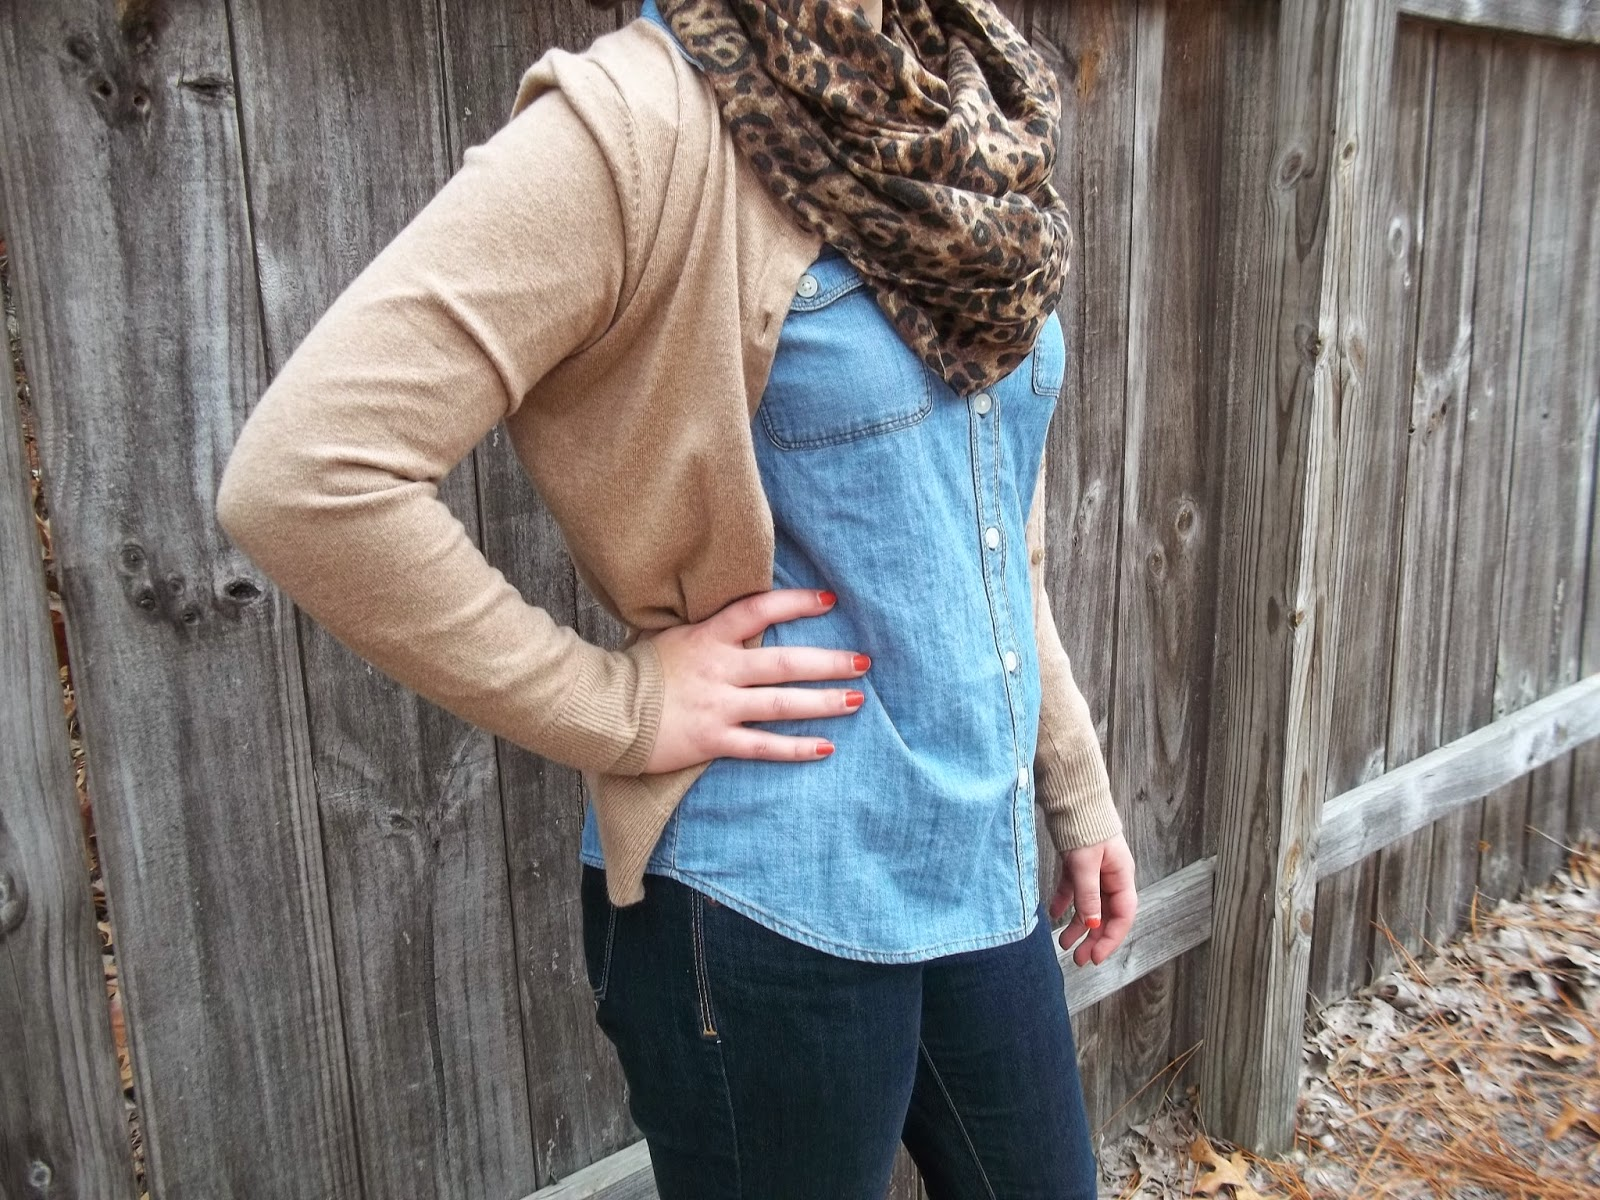 Leopard scarf, chambray shirt, jeans, tan cardigan, brown boots